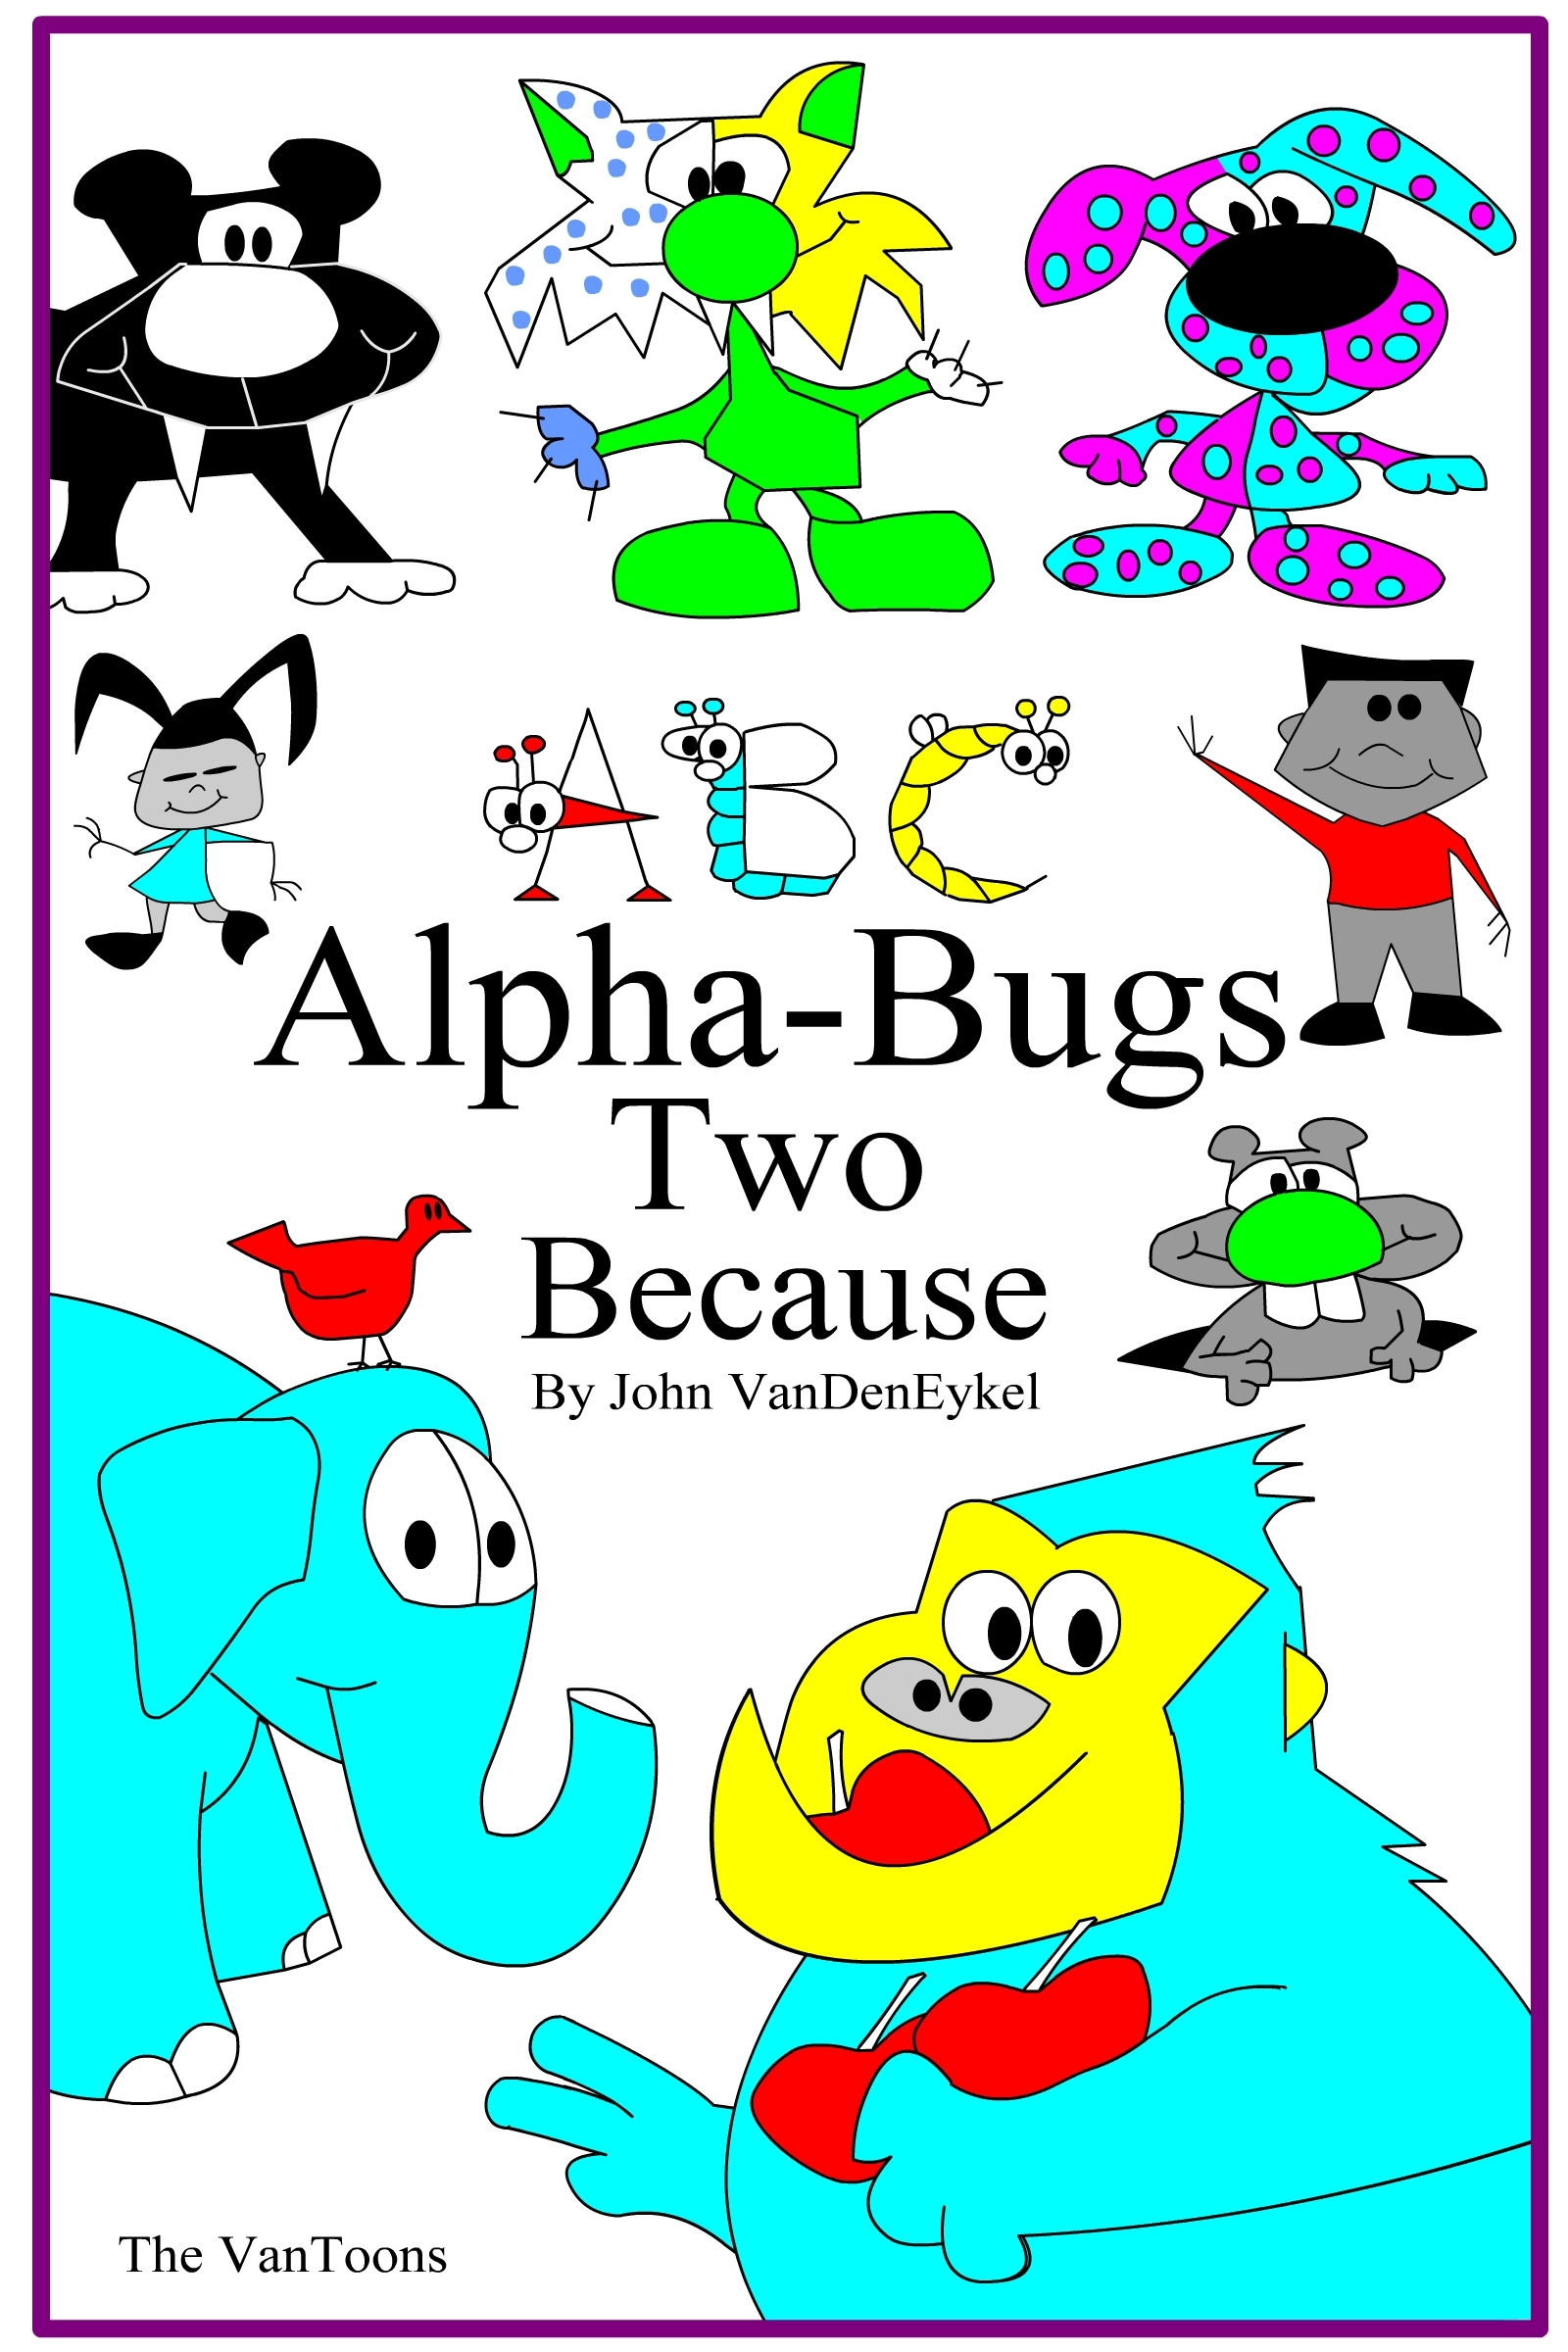 ABC Alpha-Bugs Two Because